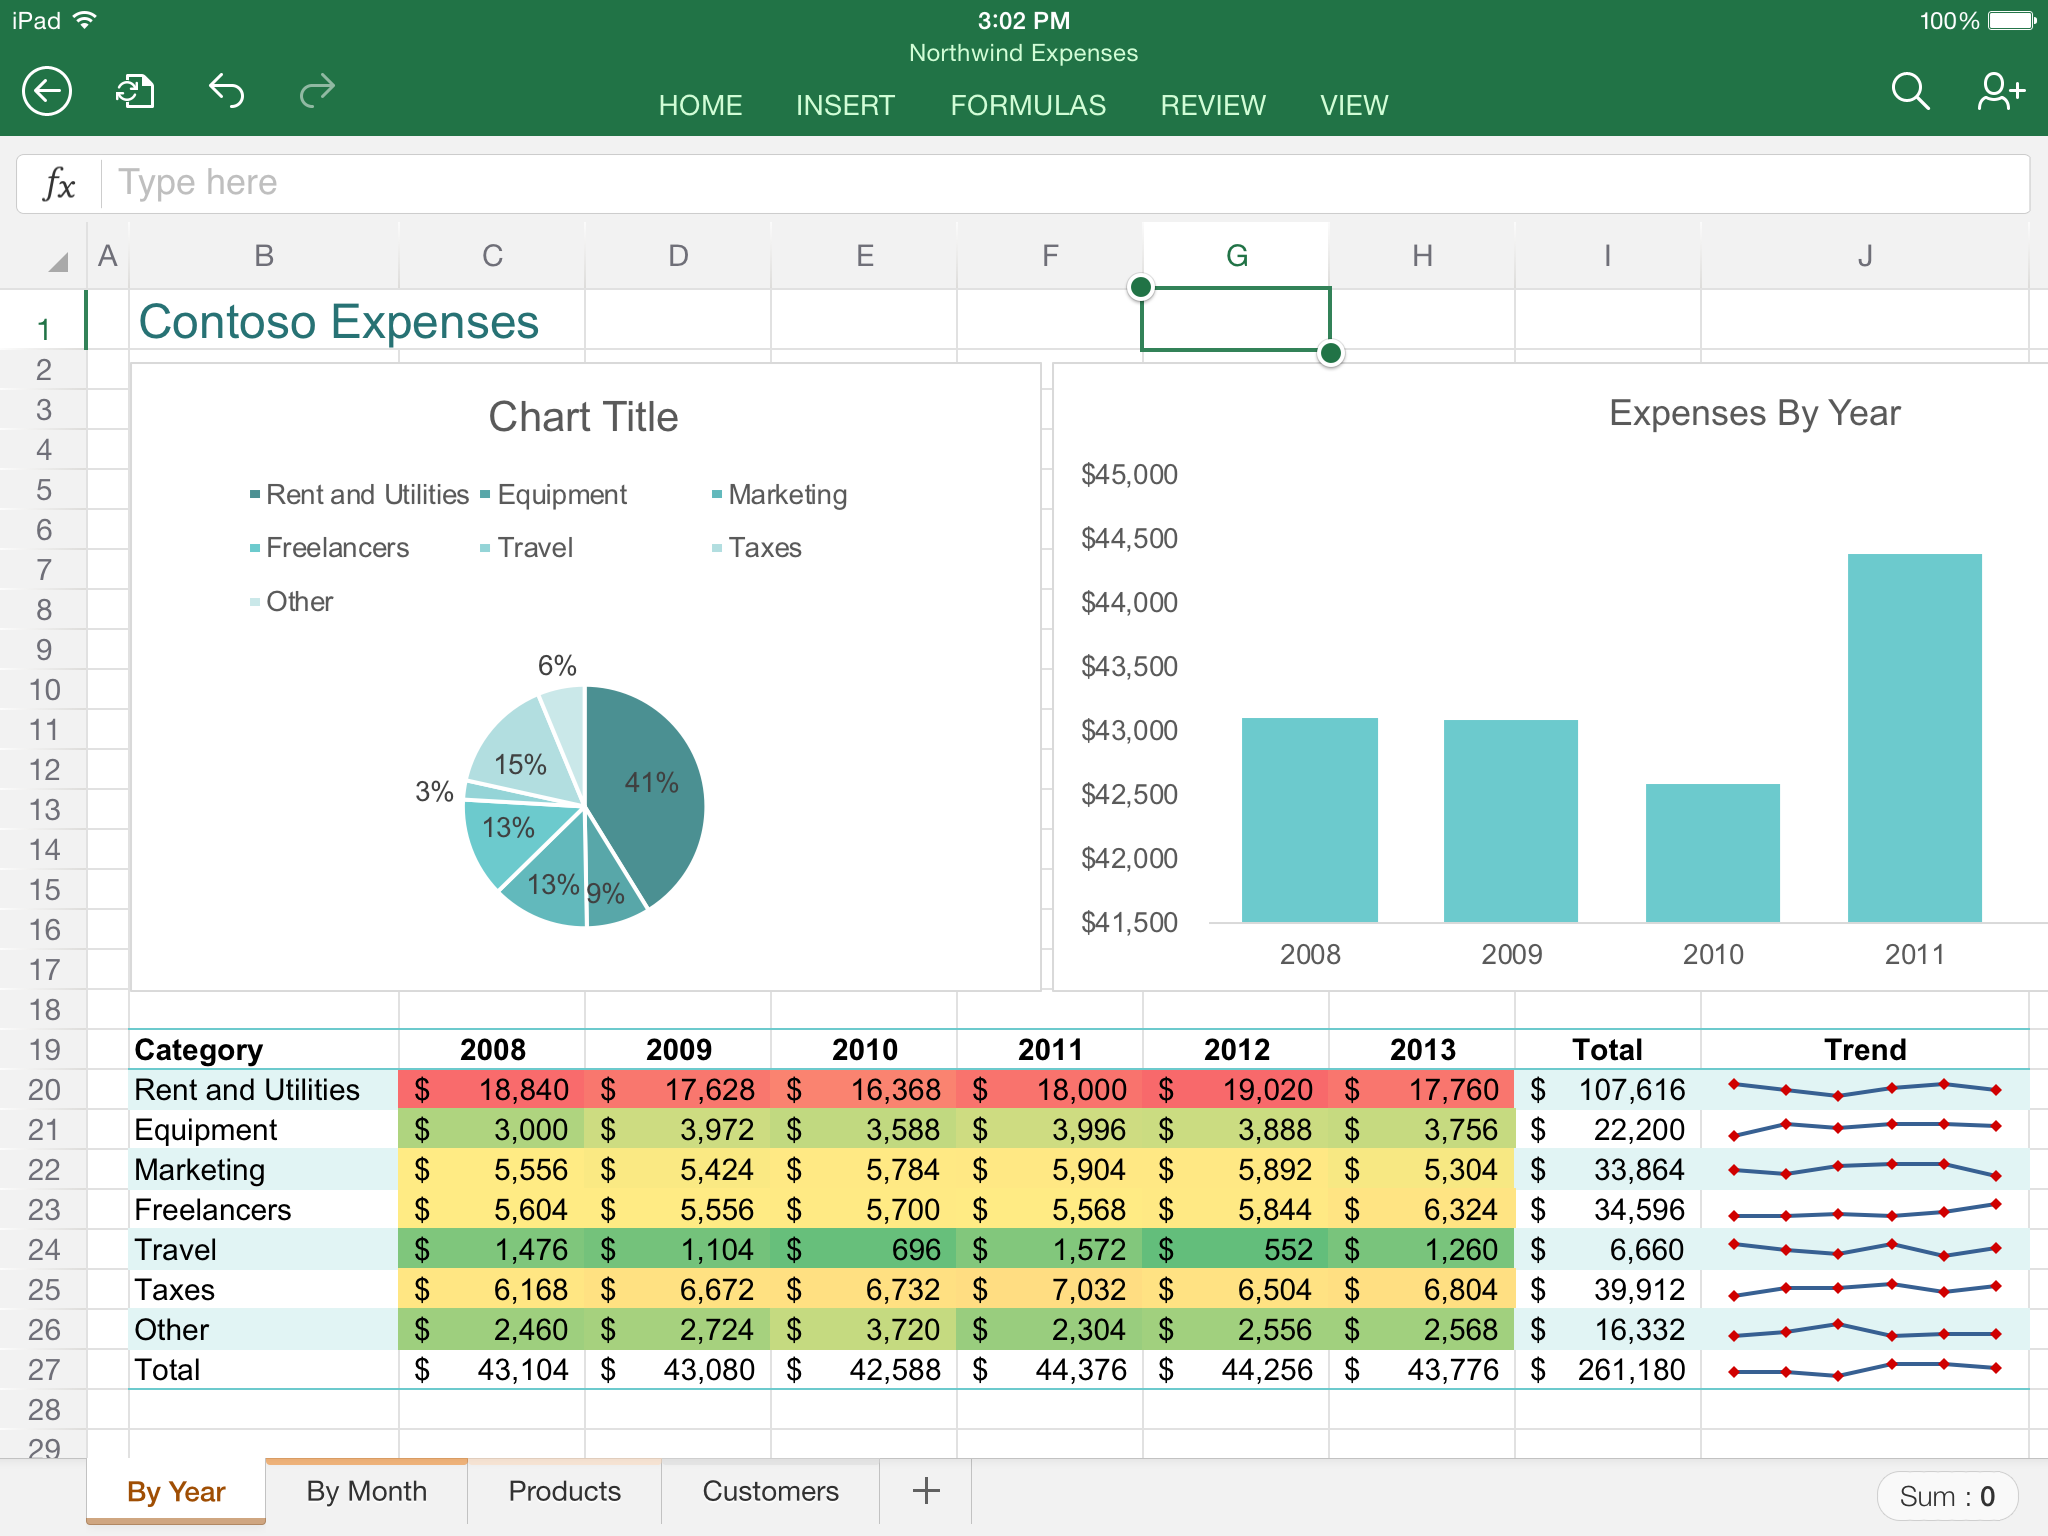 Ediblewildsus  Remarkable App Highlight Excel  Mobile Digital Now With Marvelous Excel In Action With Nice Pdf Table To Excel Also Hide Rows In Excel In Addition Excel Merge And Center And Waterfall Chart In Excel As Well As Difference Formula In Excel Additionally Strikethrough Shortcut Excel From Youstonybrookedu With Ediblewildsus  Marvelous App Highlight Excel  Mobile Digital Now With Nice Excel In Action And Remarkable Pdf Table To Excel Also Hide Rows In Excel In Addition Excel Merge And Center From Youstonybrookedu